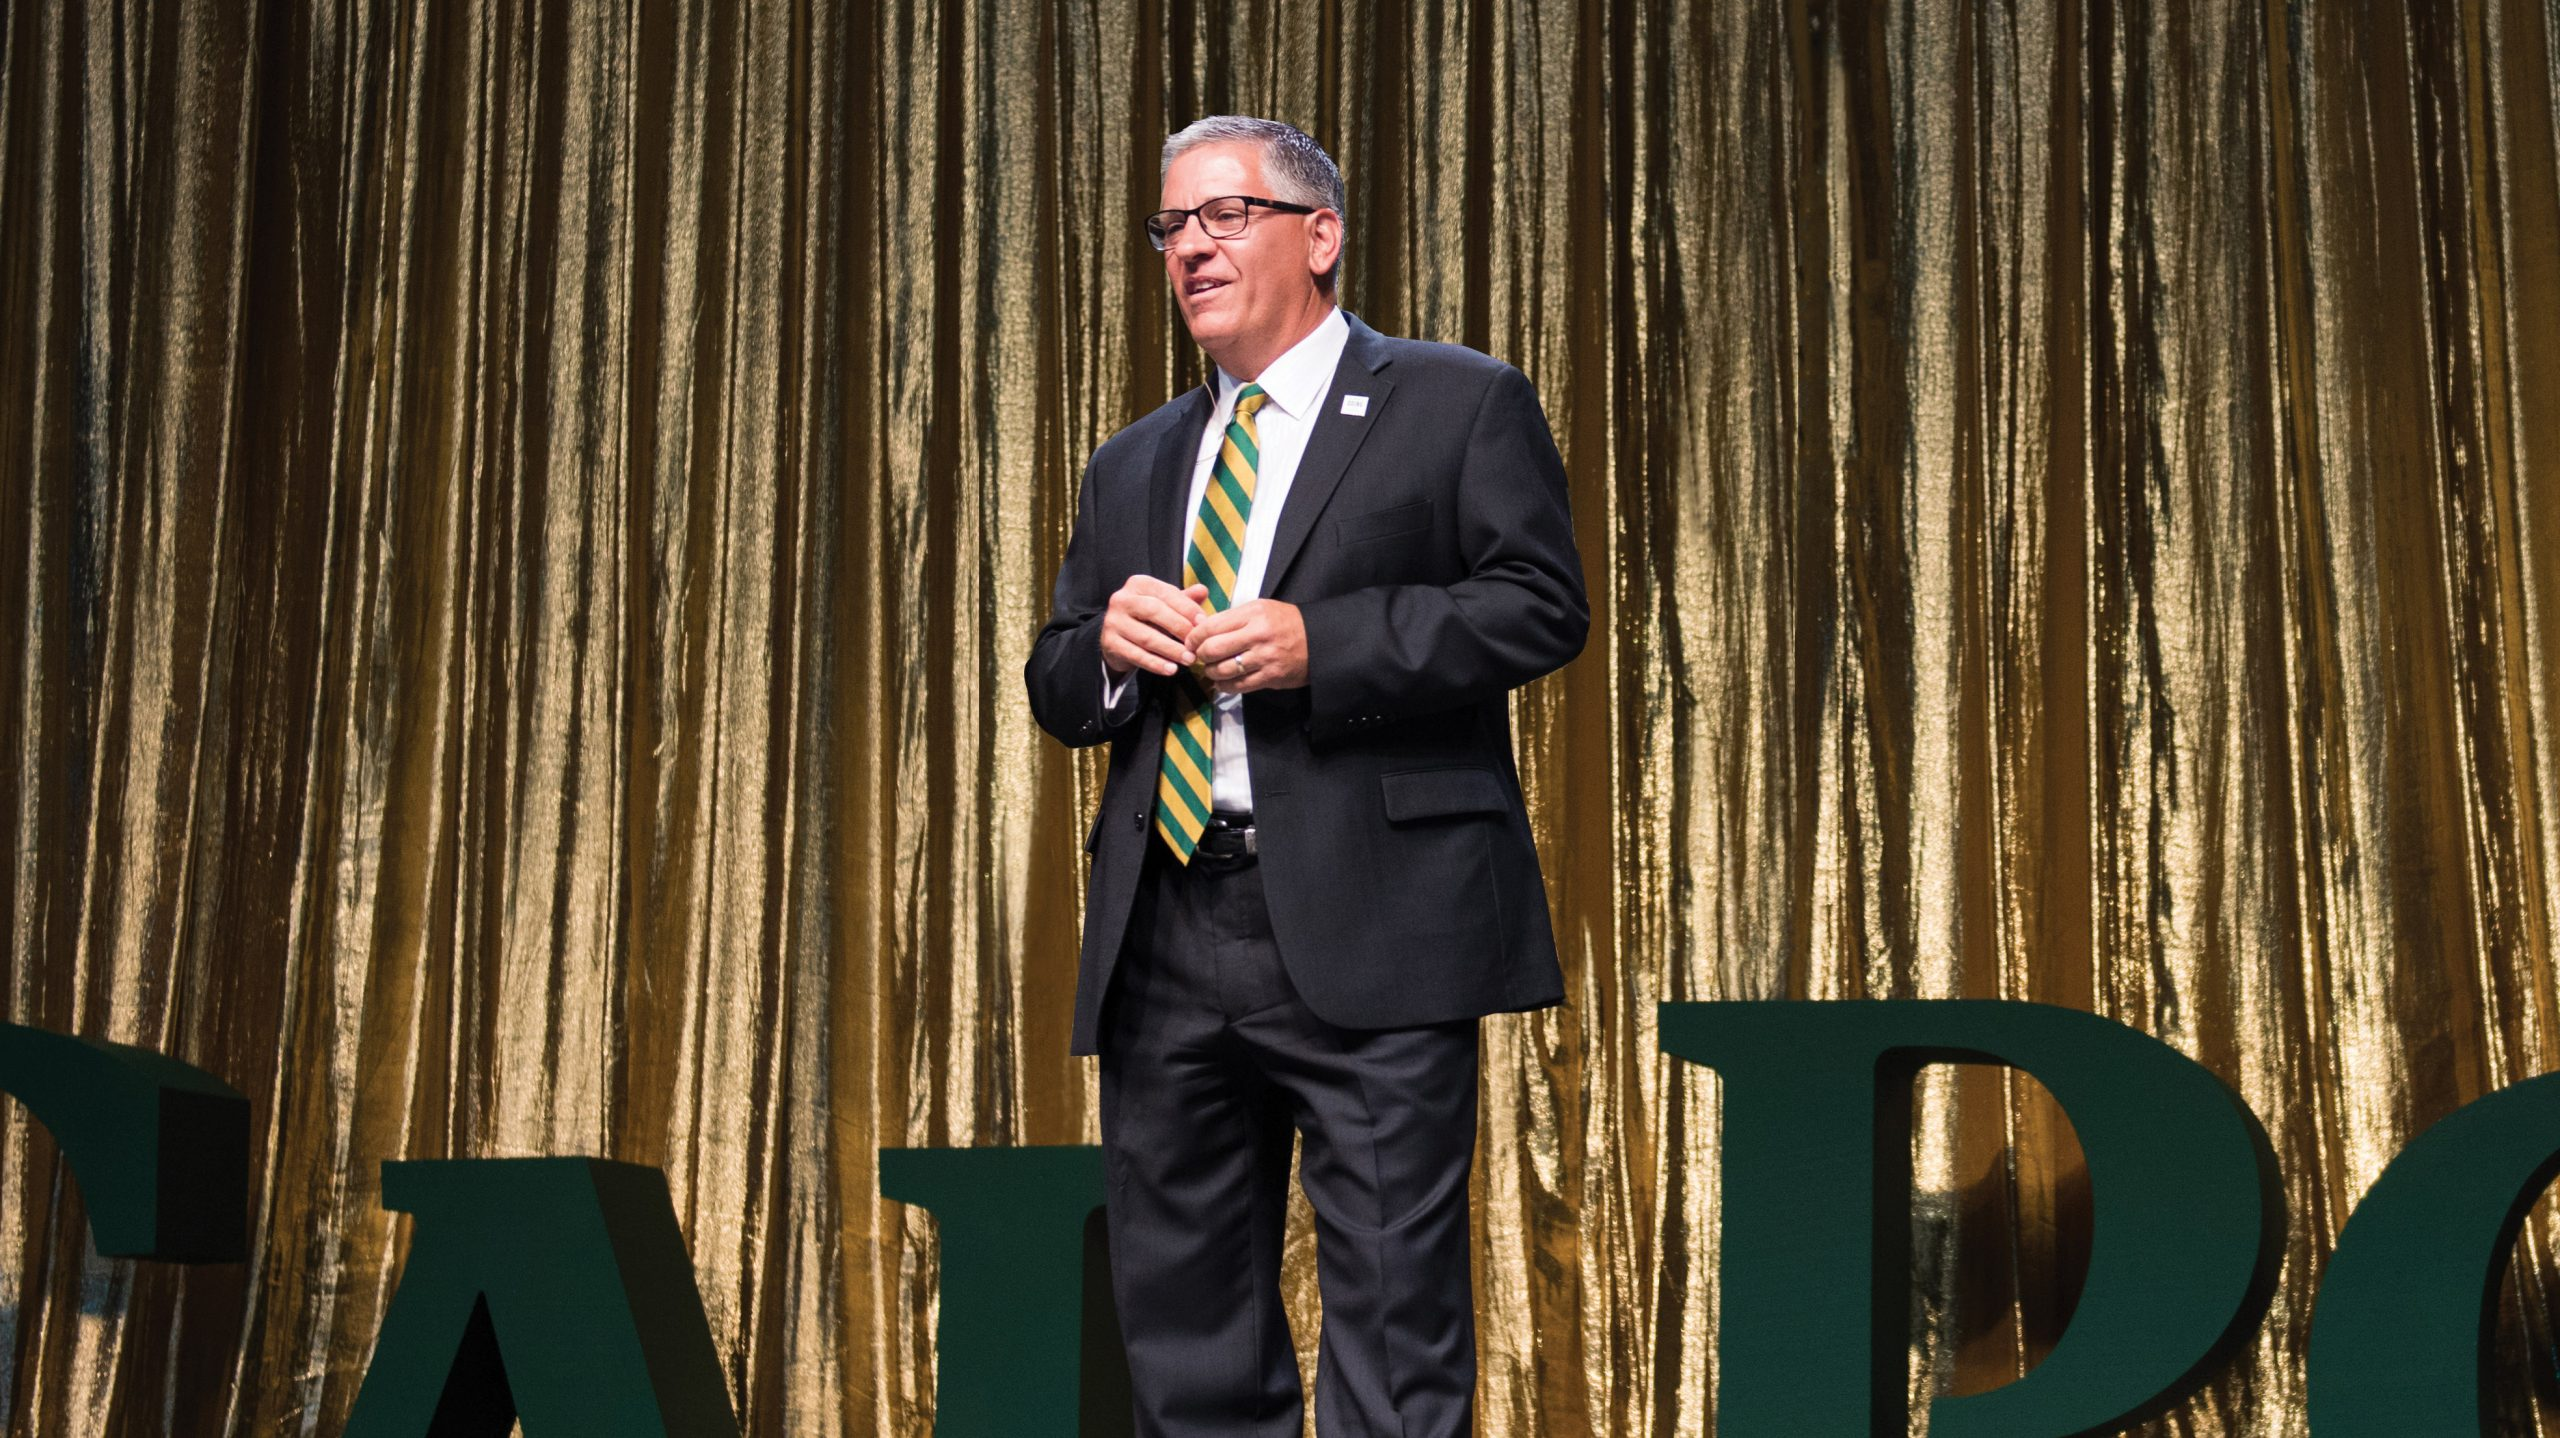 President Armstrong speaks on stage at the Evening of Green and Gold with a Cal Poly sign in the background